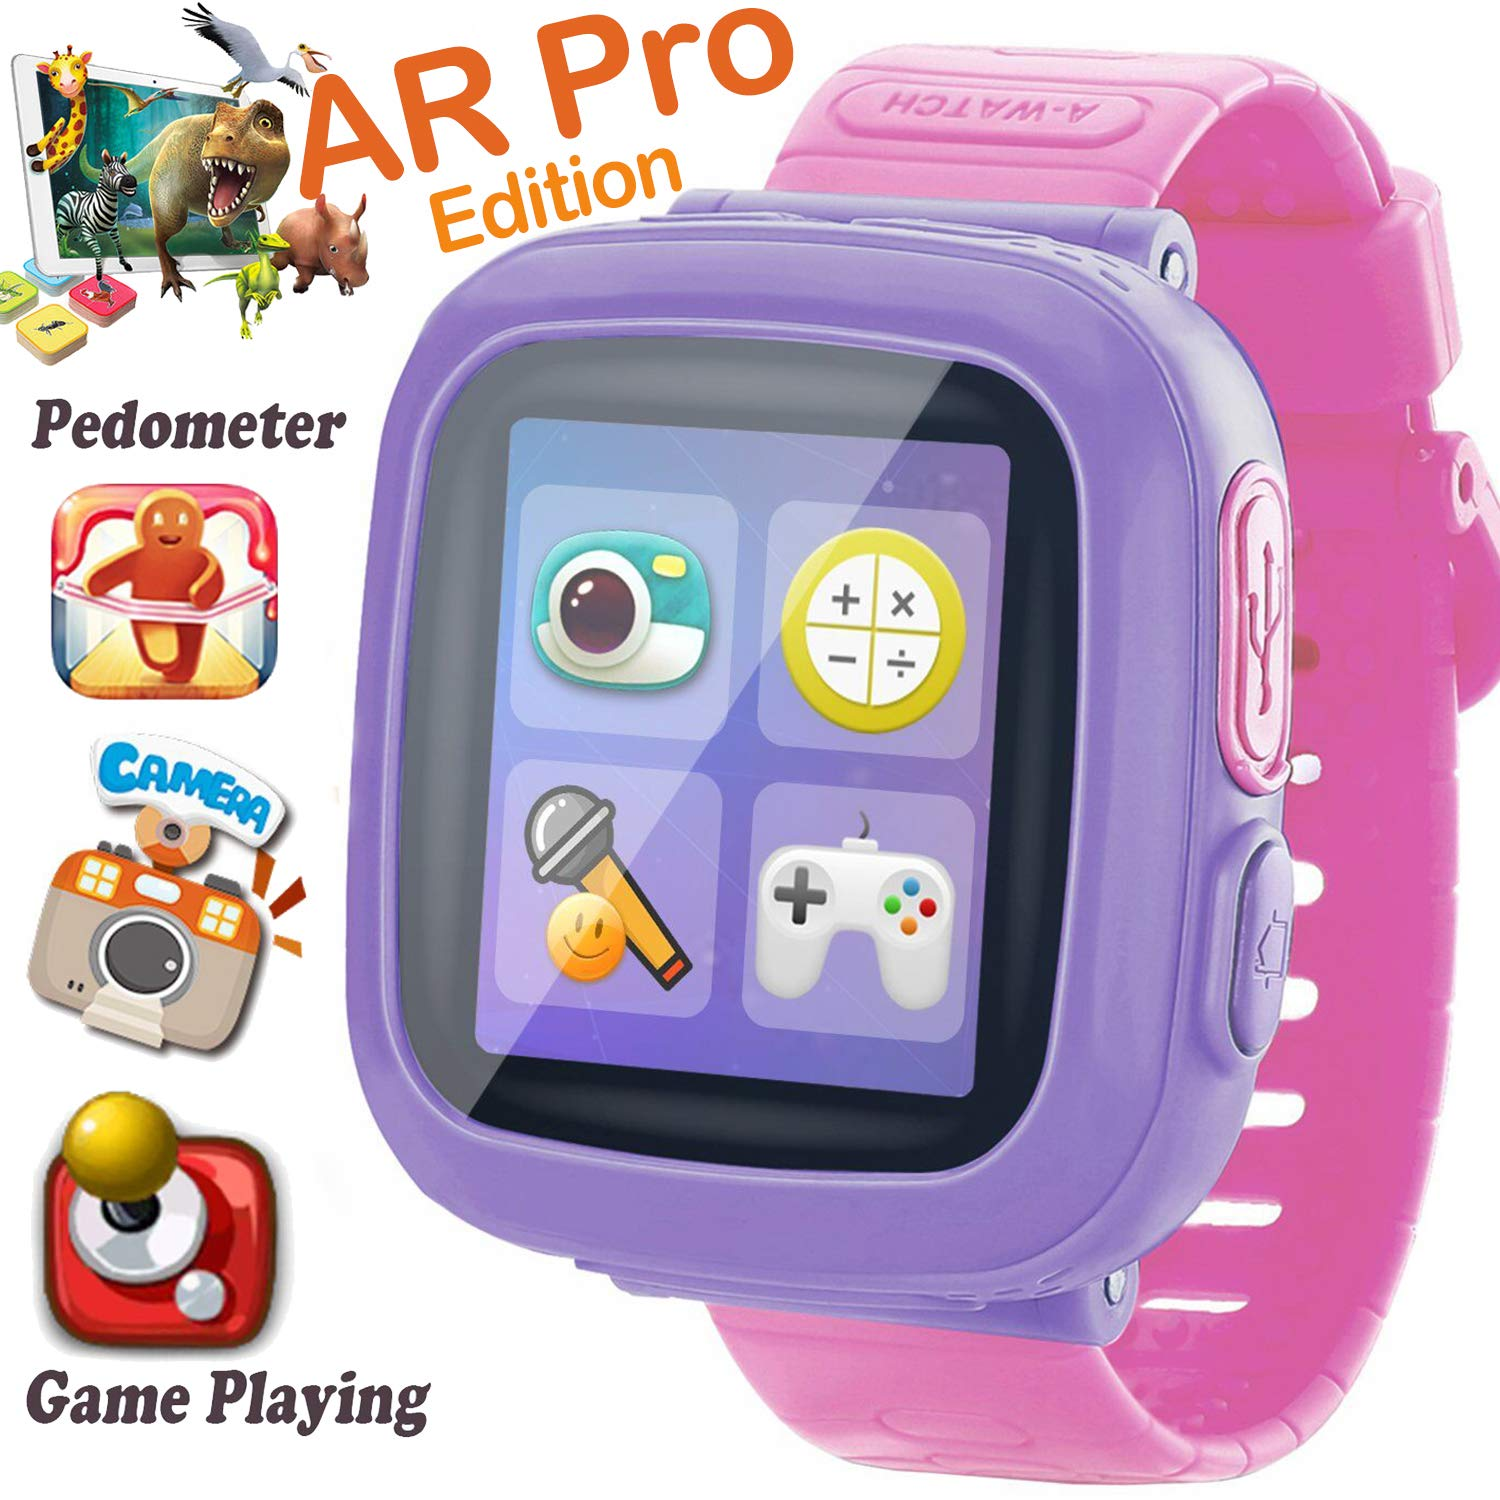 Kids Smart Watch, [AR Pro Edition] Game Smartwatch for Ages 3-12 Girls Boys Toddlers Digital Wristbands, 1.5'' Screen Camera Pedometer Alarm Clock Timer Learning Toys Holiay Birthday Gifts (Pink)